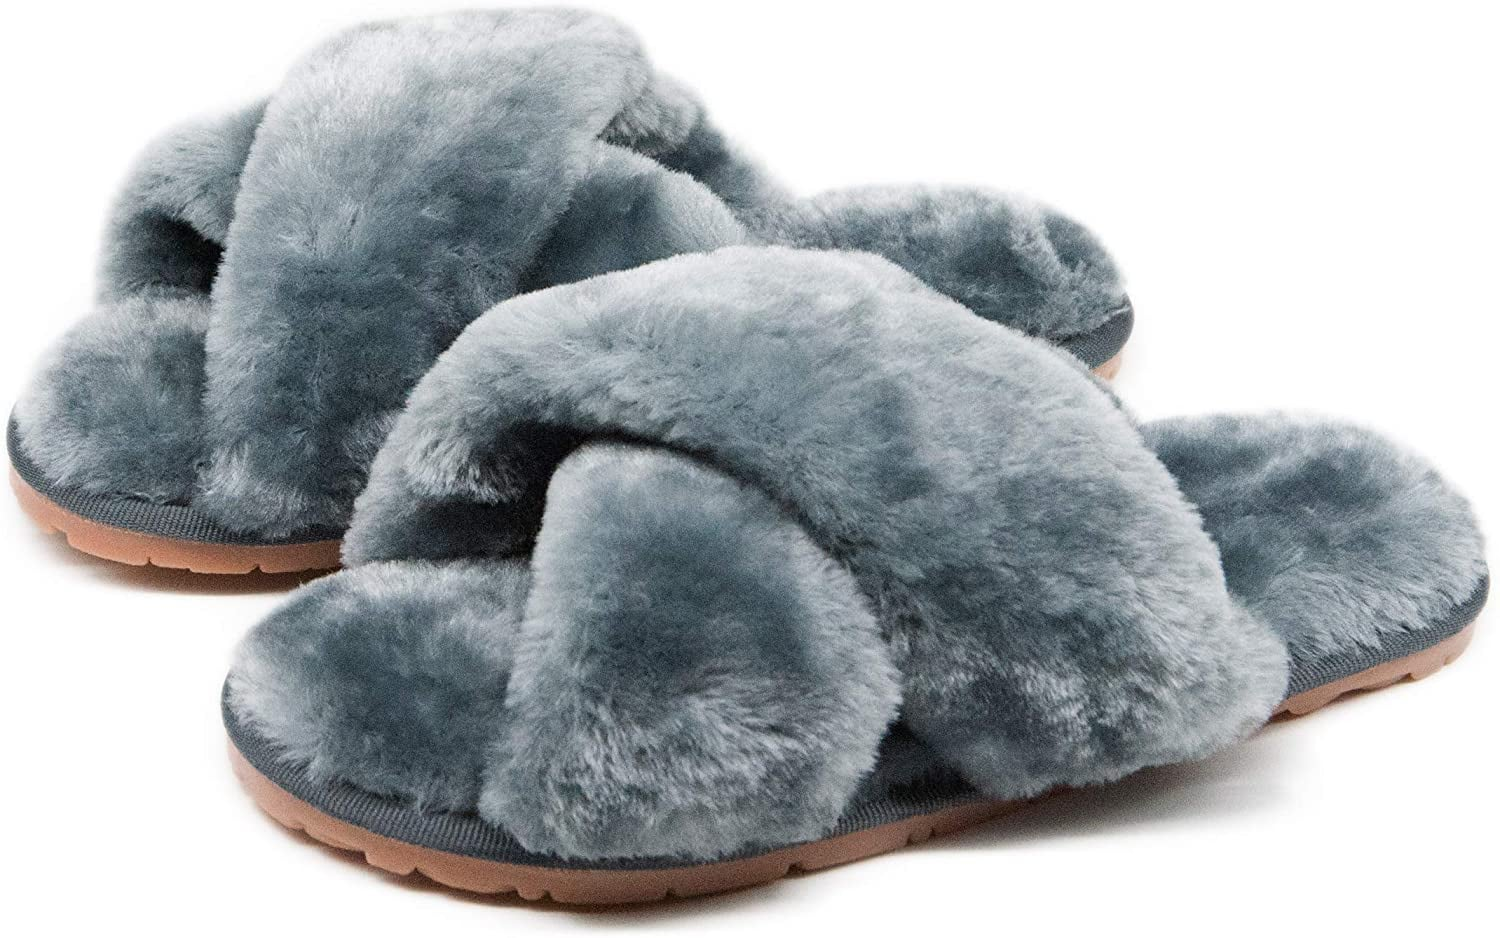 Fuzzy Fluffy Furry Fur Slippers | The